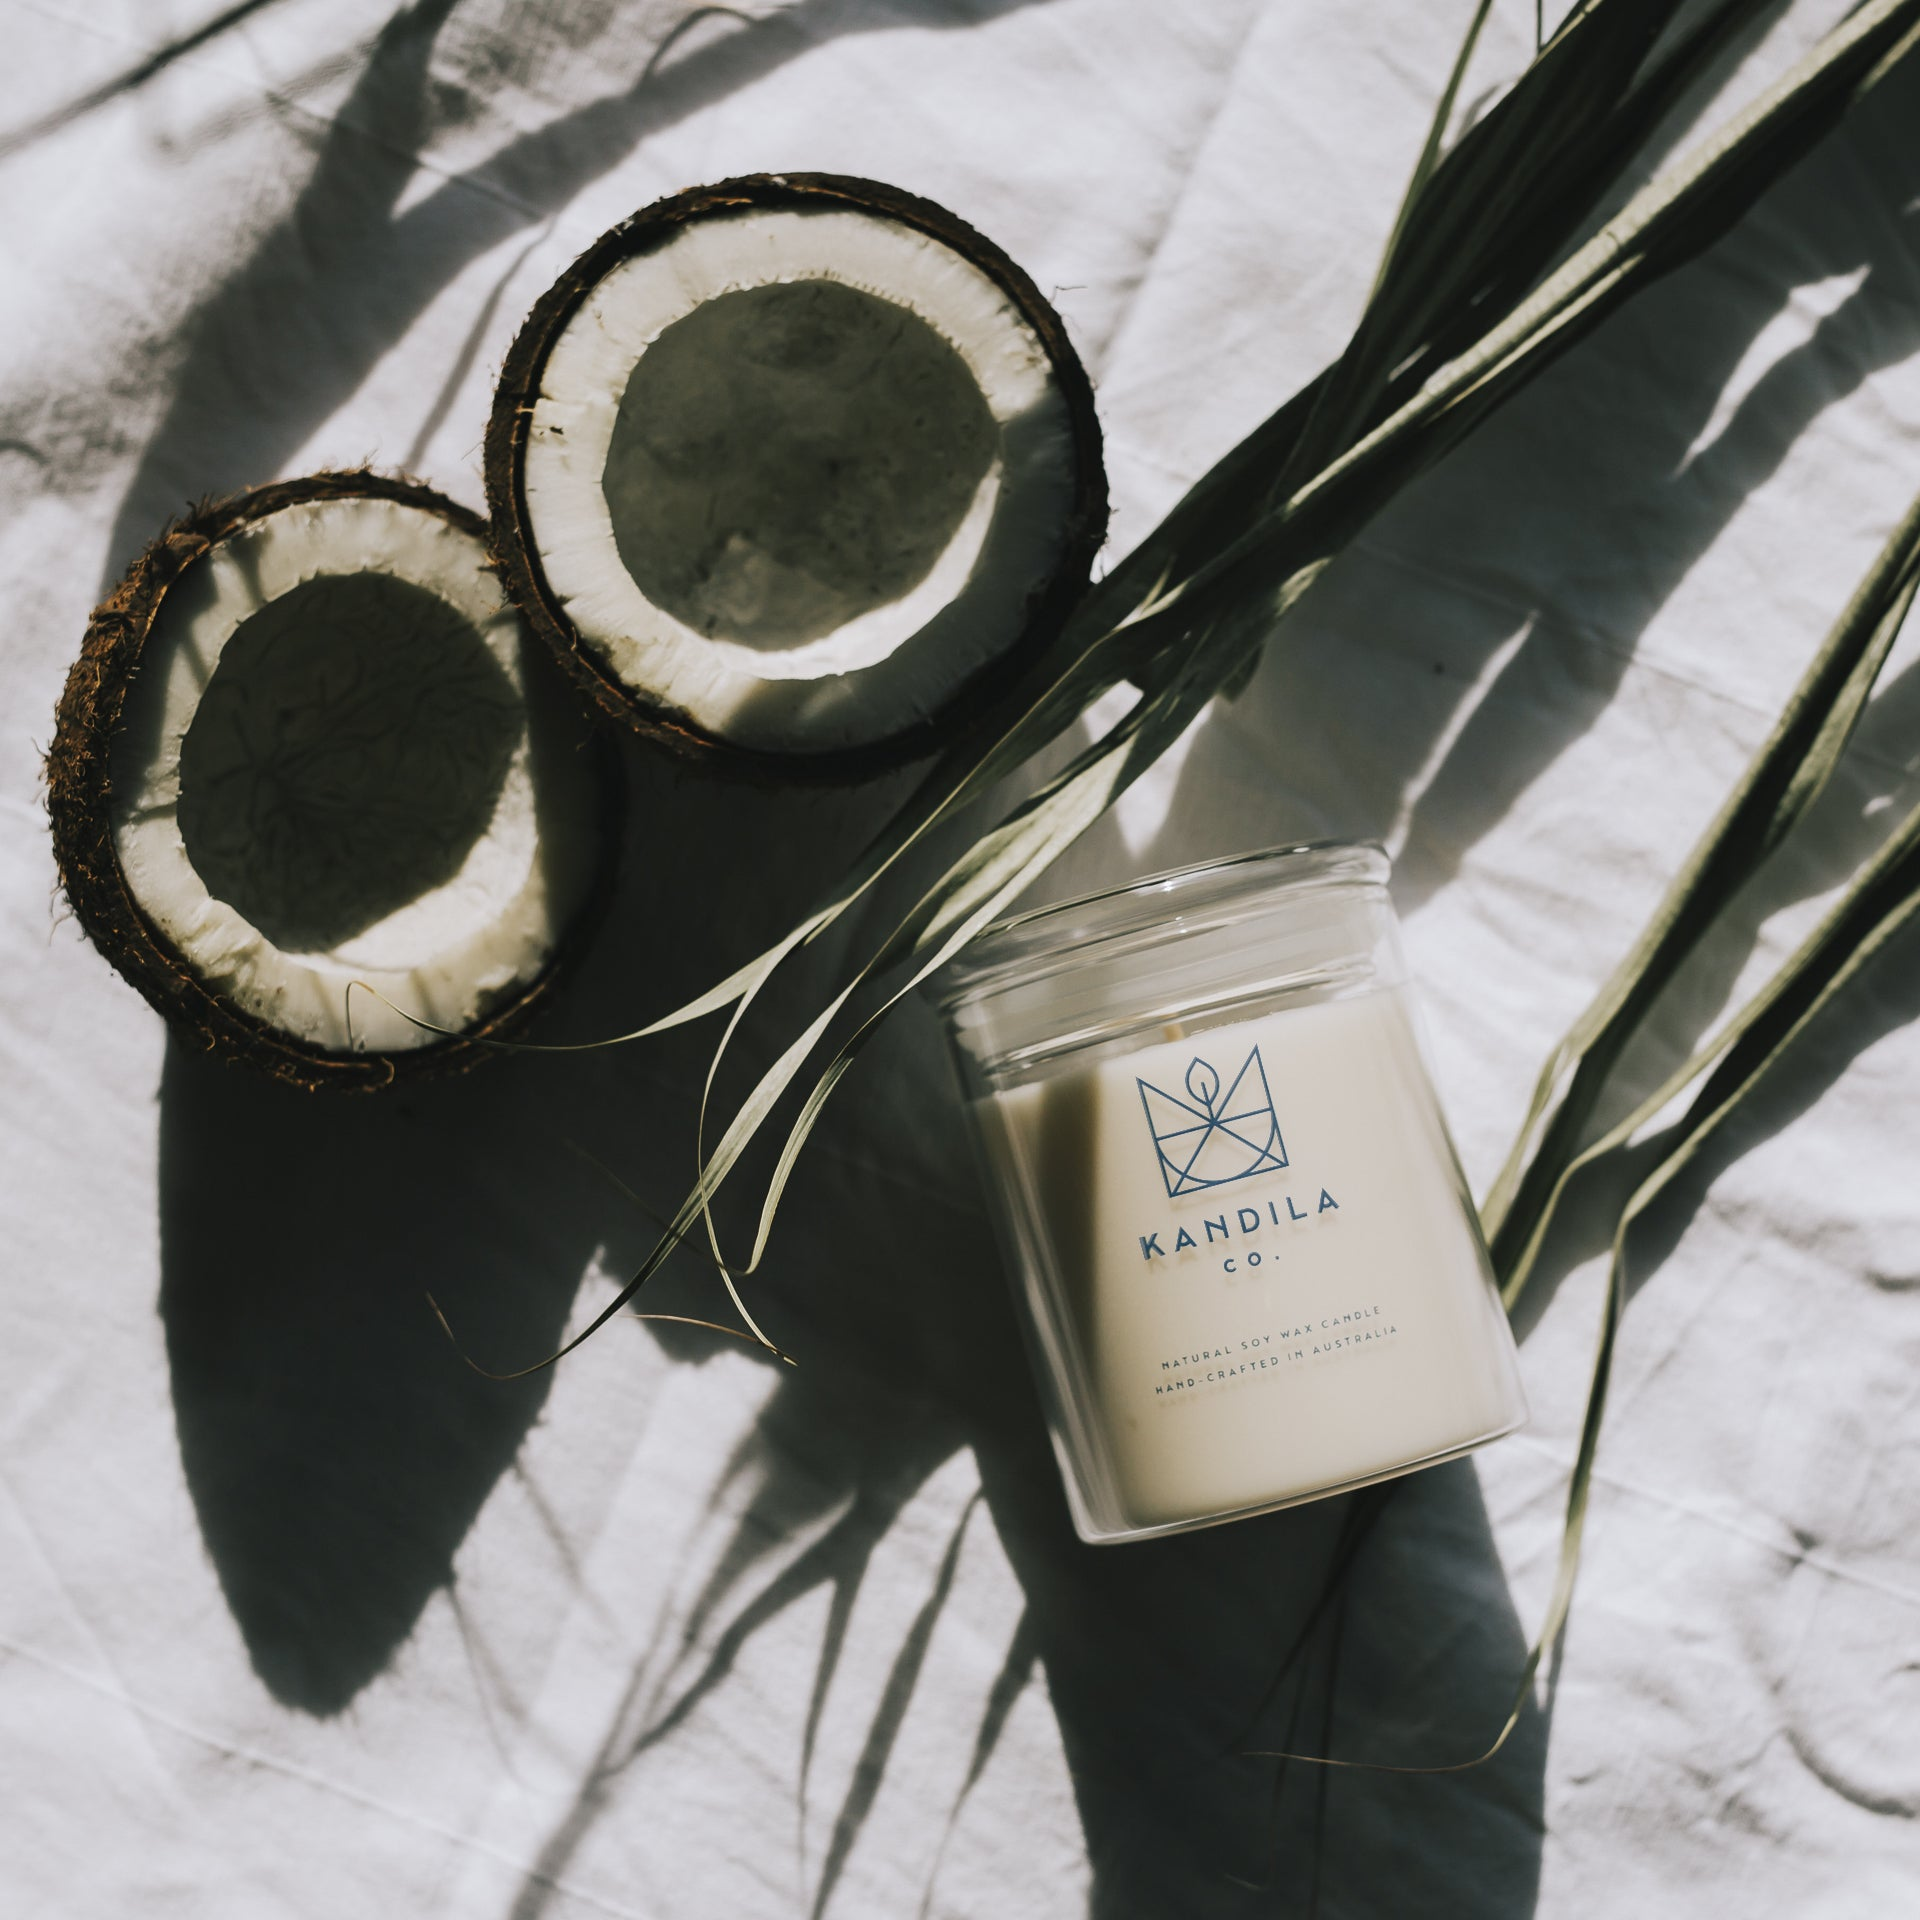 Kandila Company Tropical Treat Natural Vegan Soy Candle Melbourne Australia